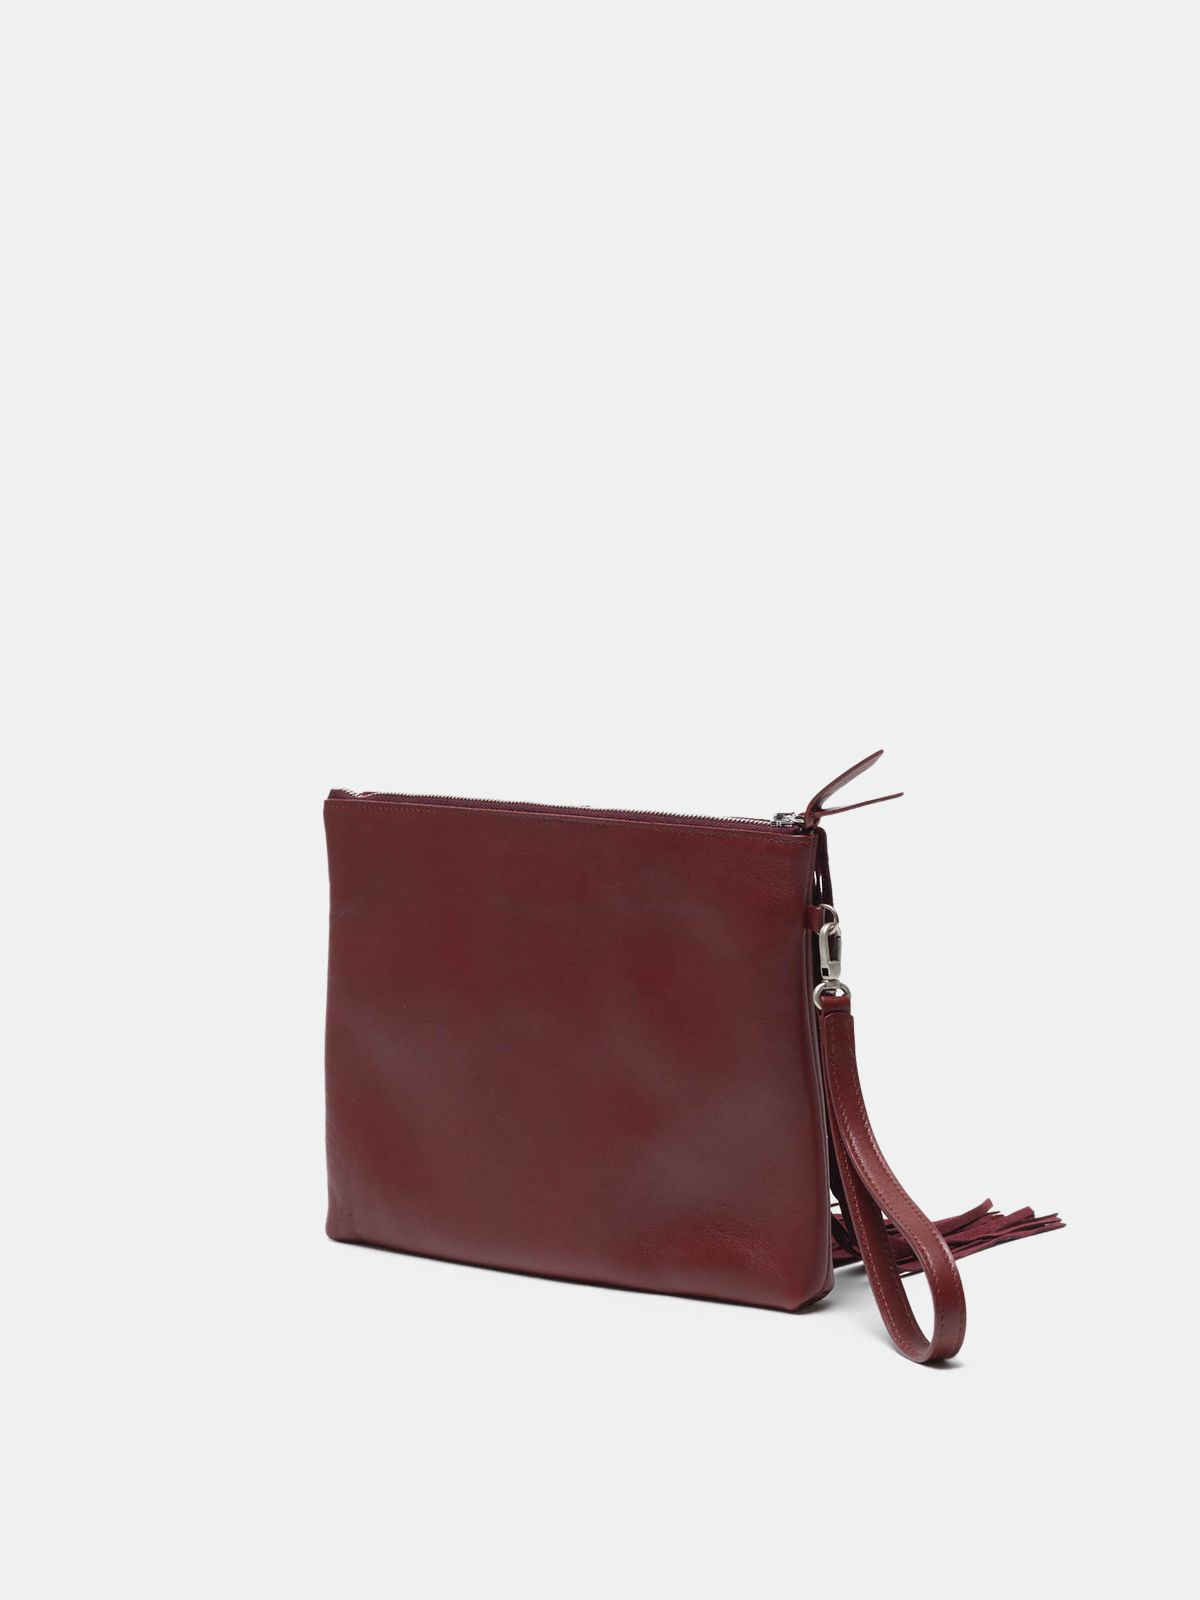 Golden Goose - XL Toast bag in leather with suede fringe in